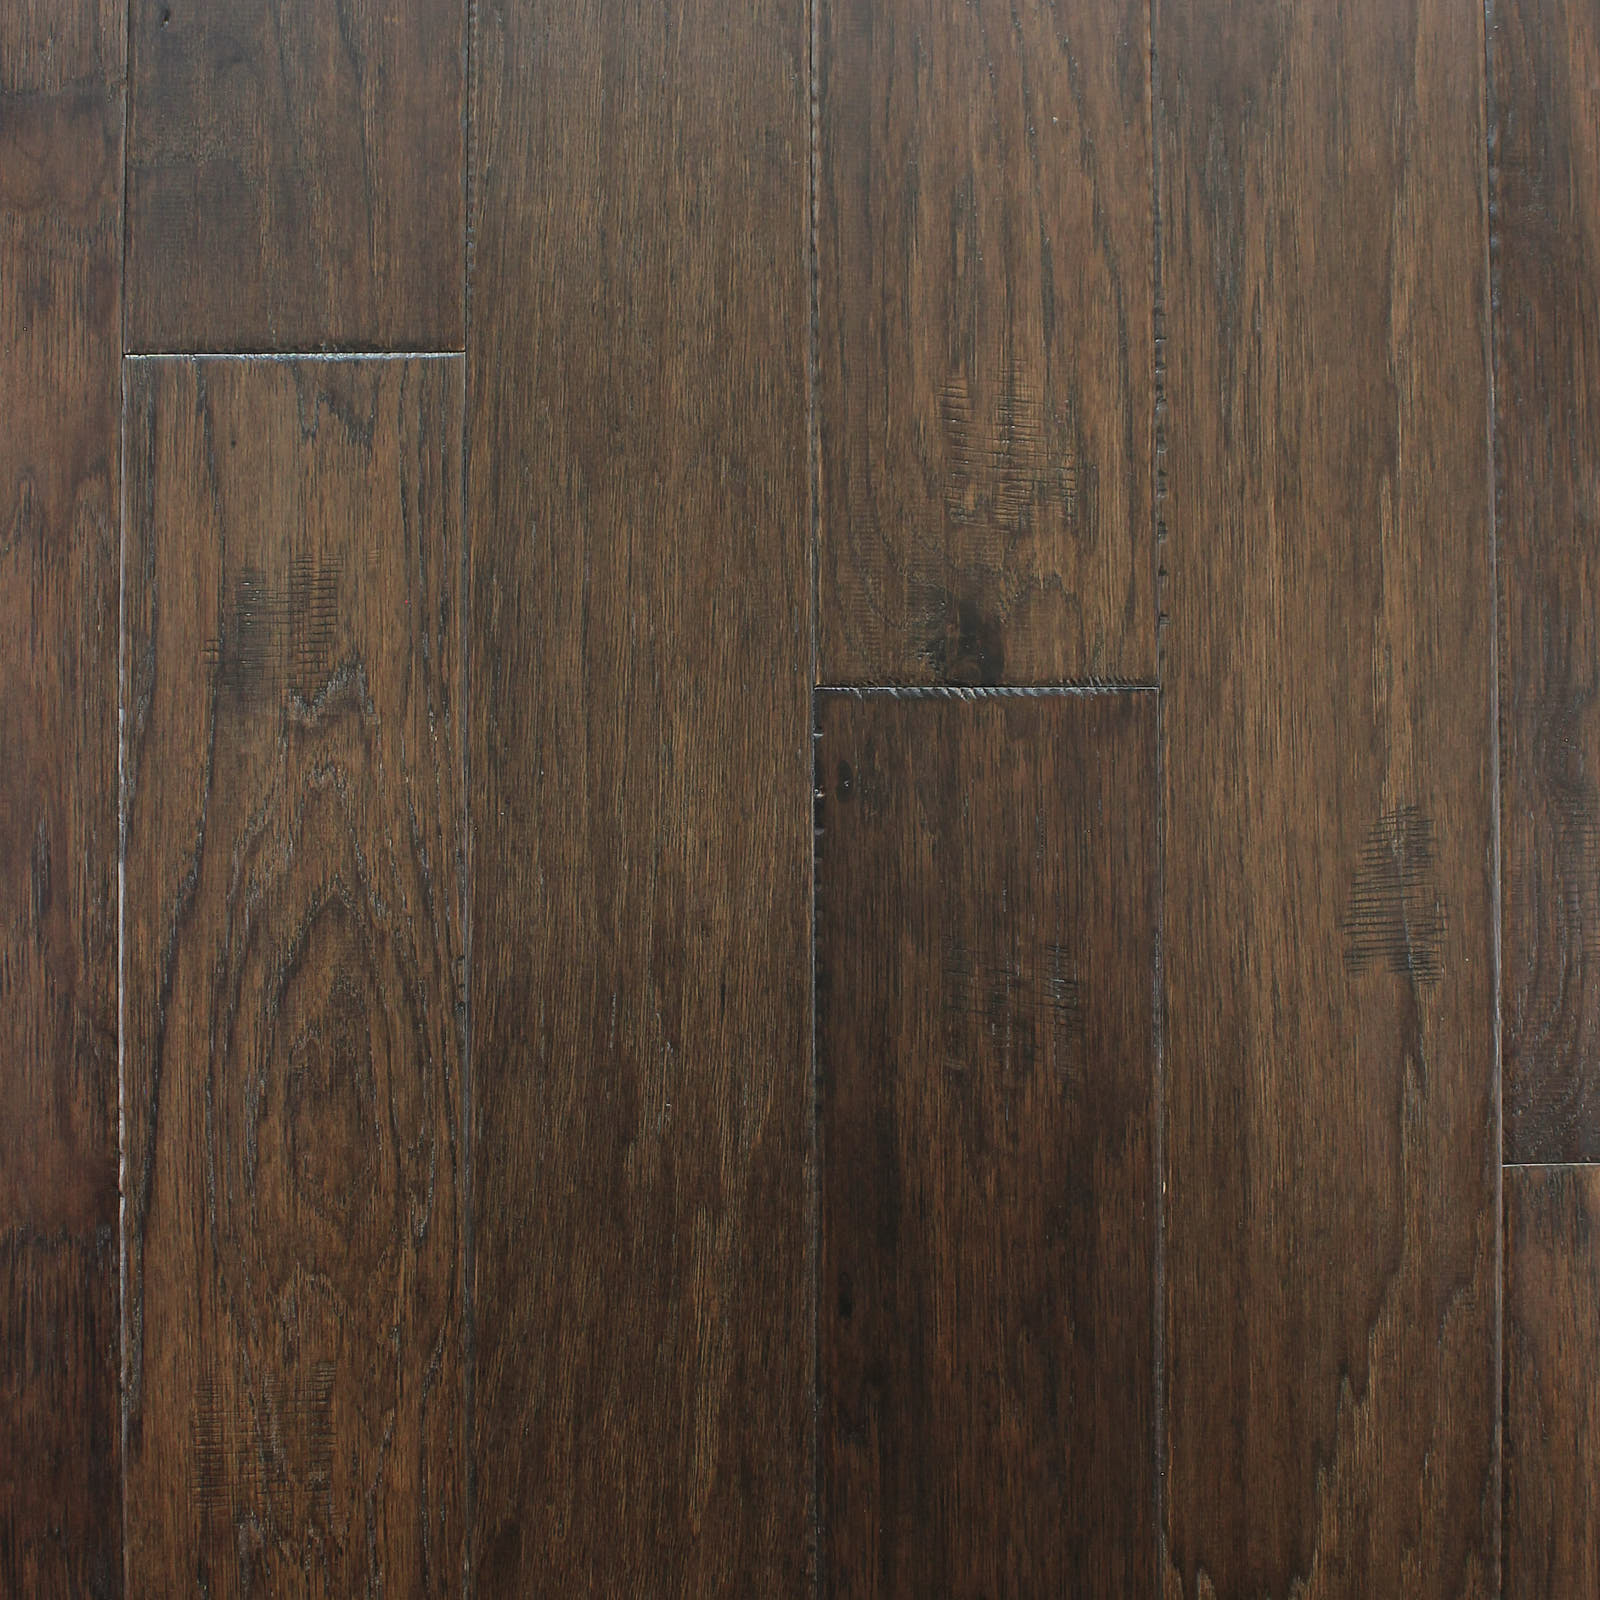 Windridge Espresso Engineered Hardwood Flooring